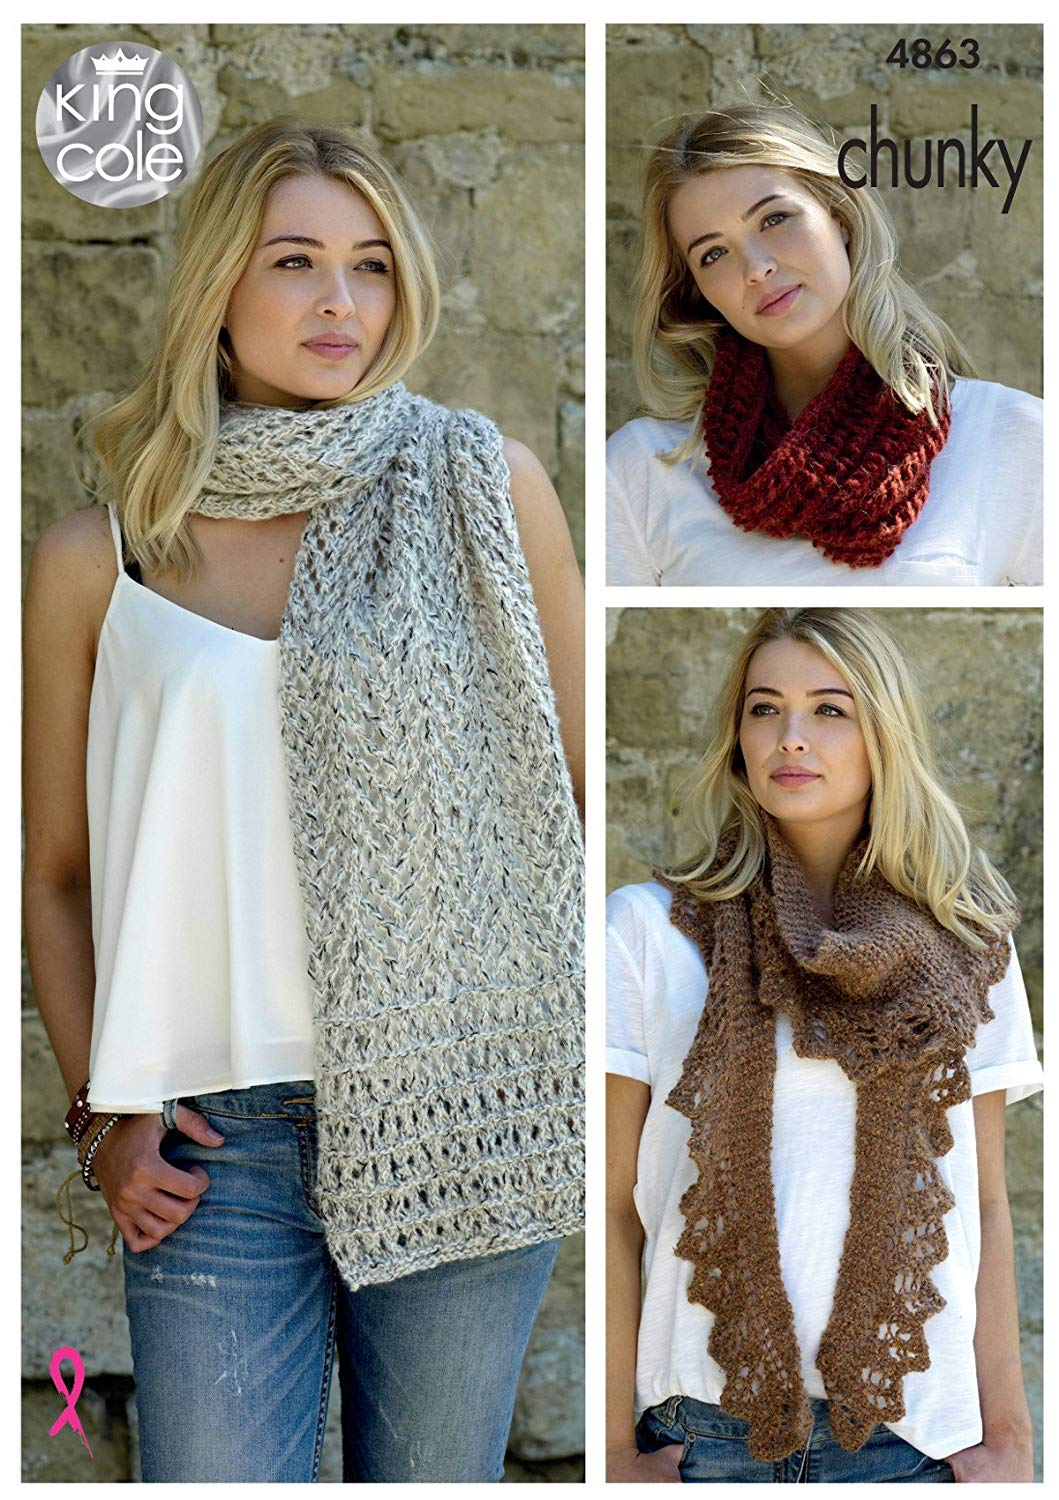 85f185f7ed5 Get Quotations · King Cole Ladies Chunky Knitting Pattern Womens Lace Scarf  Lacy Shawl   Snood (4863)